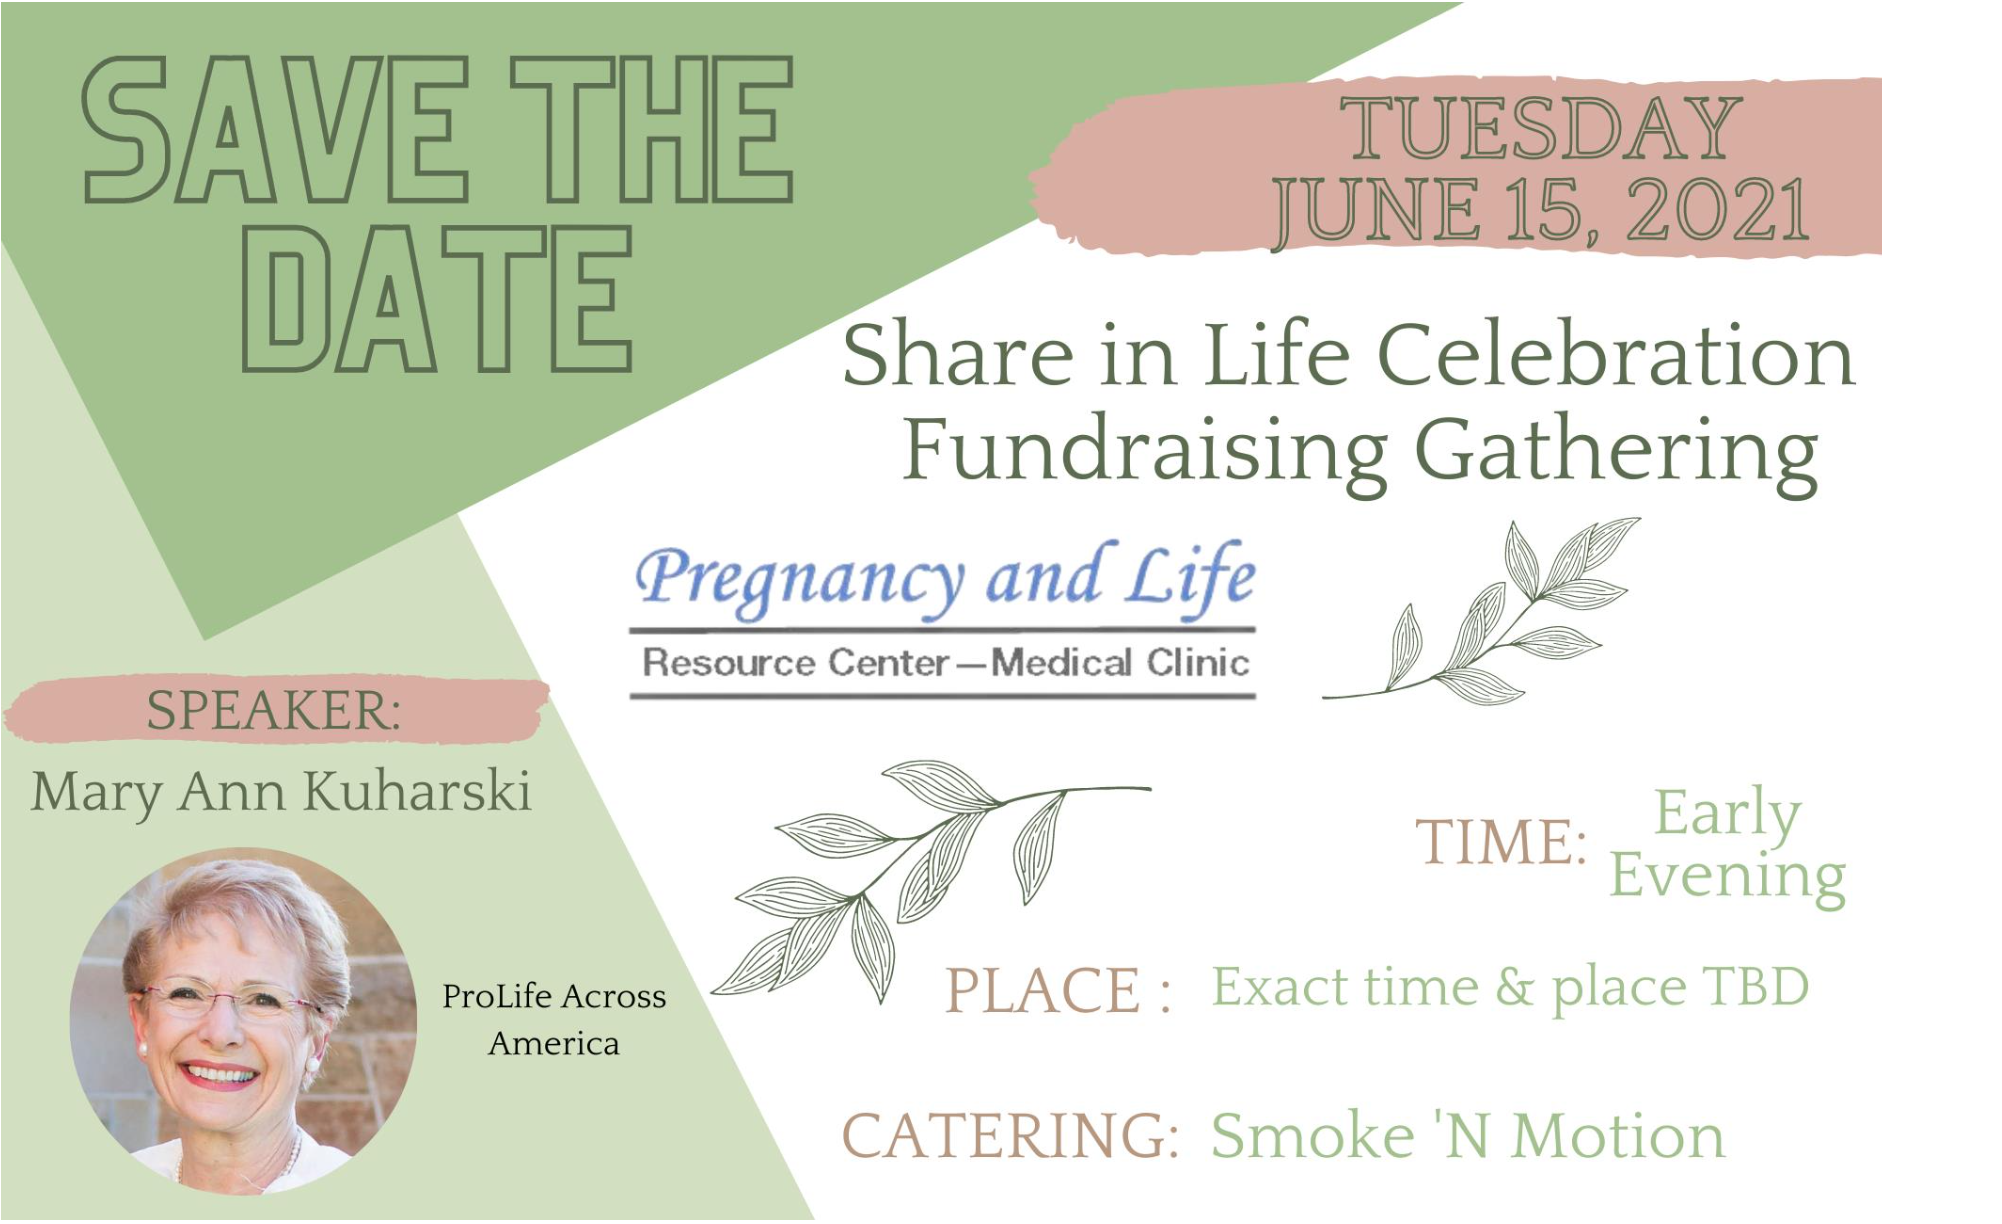 Pregnancy and Life Resource Center